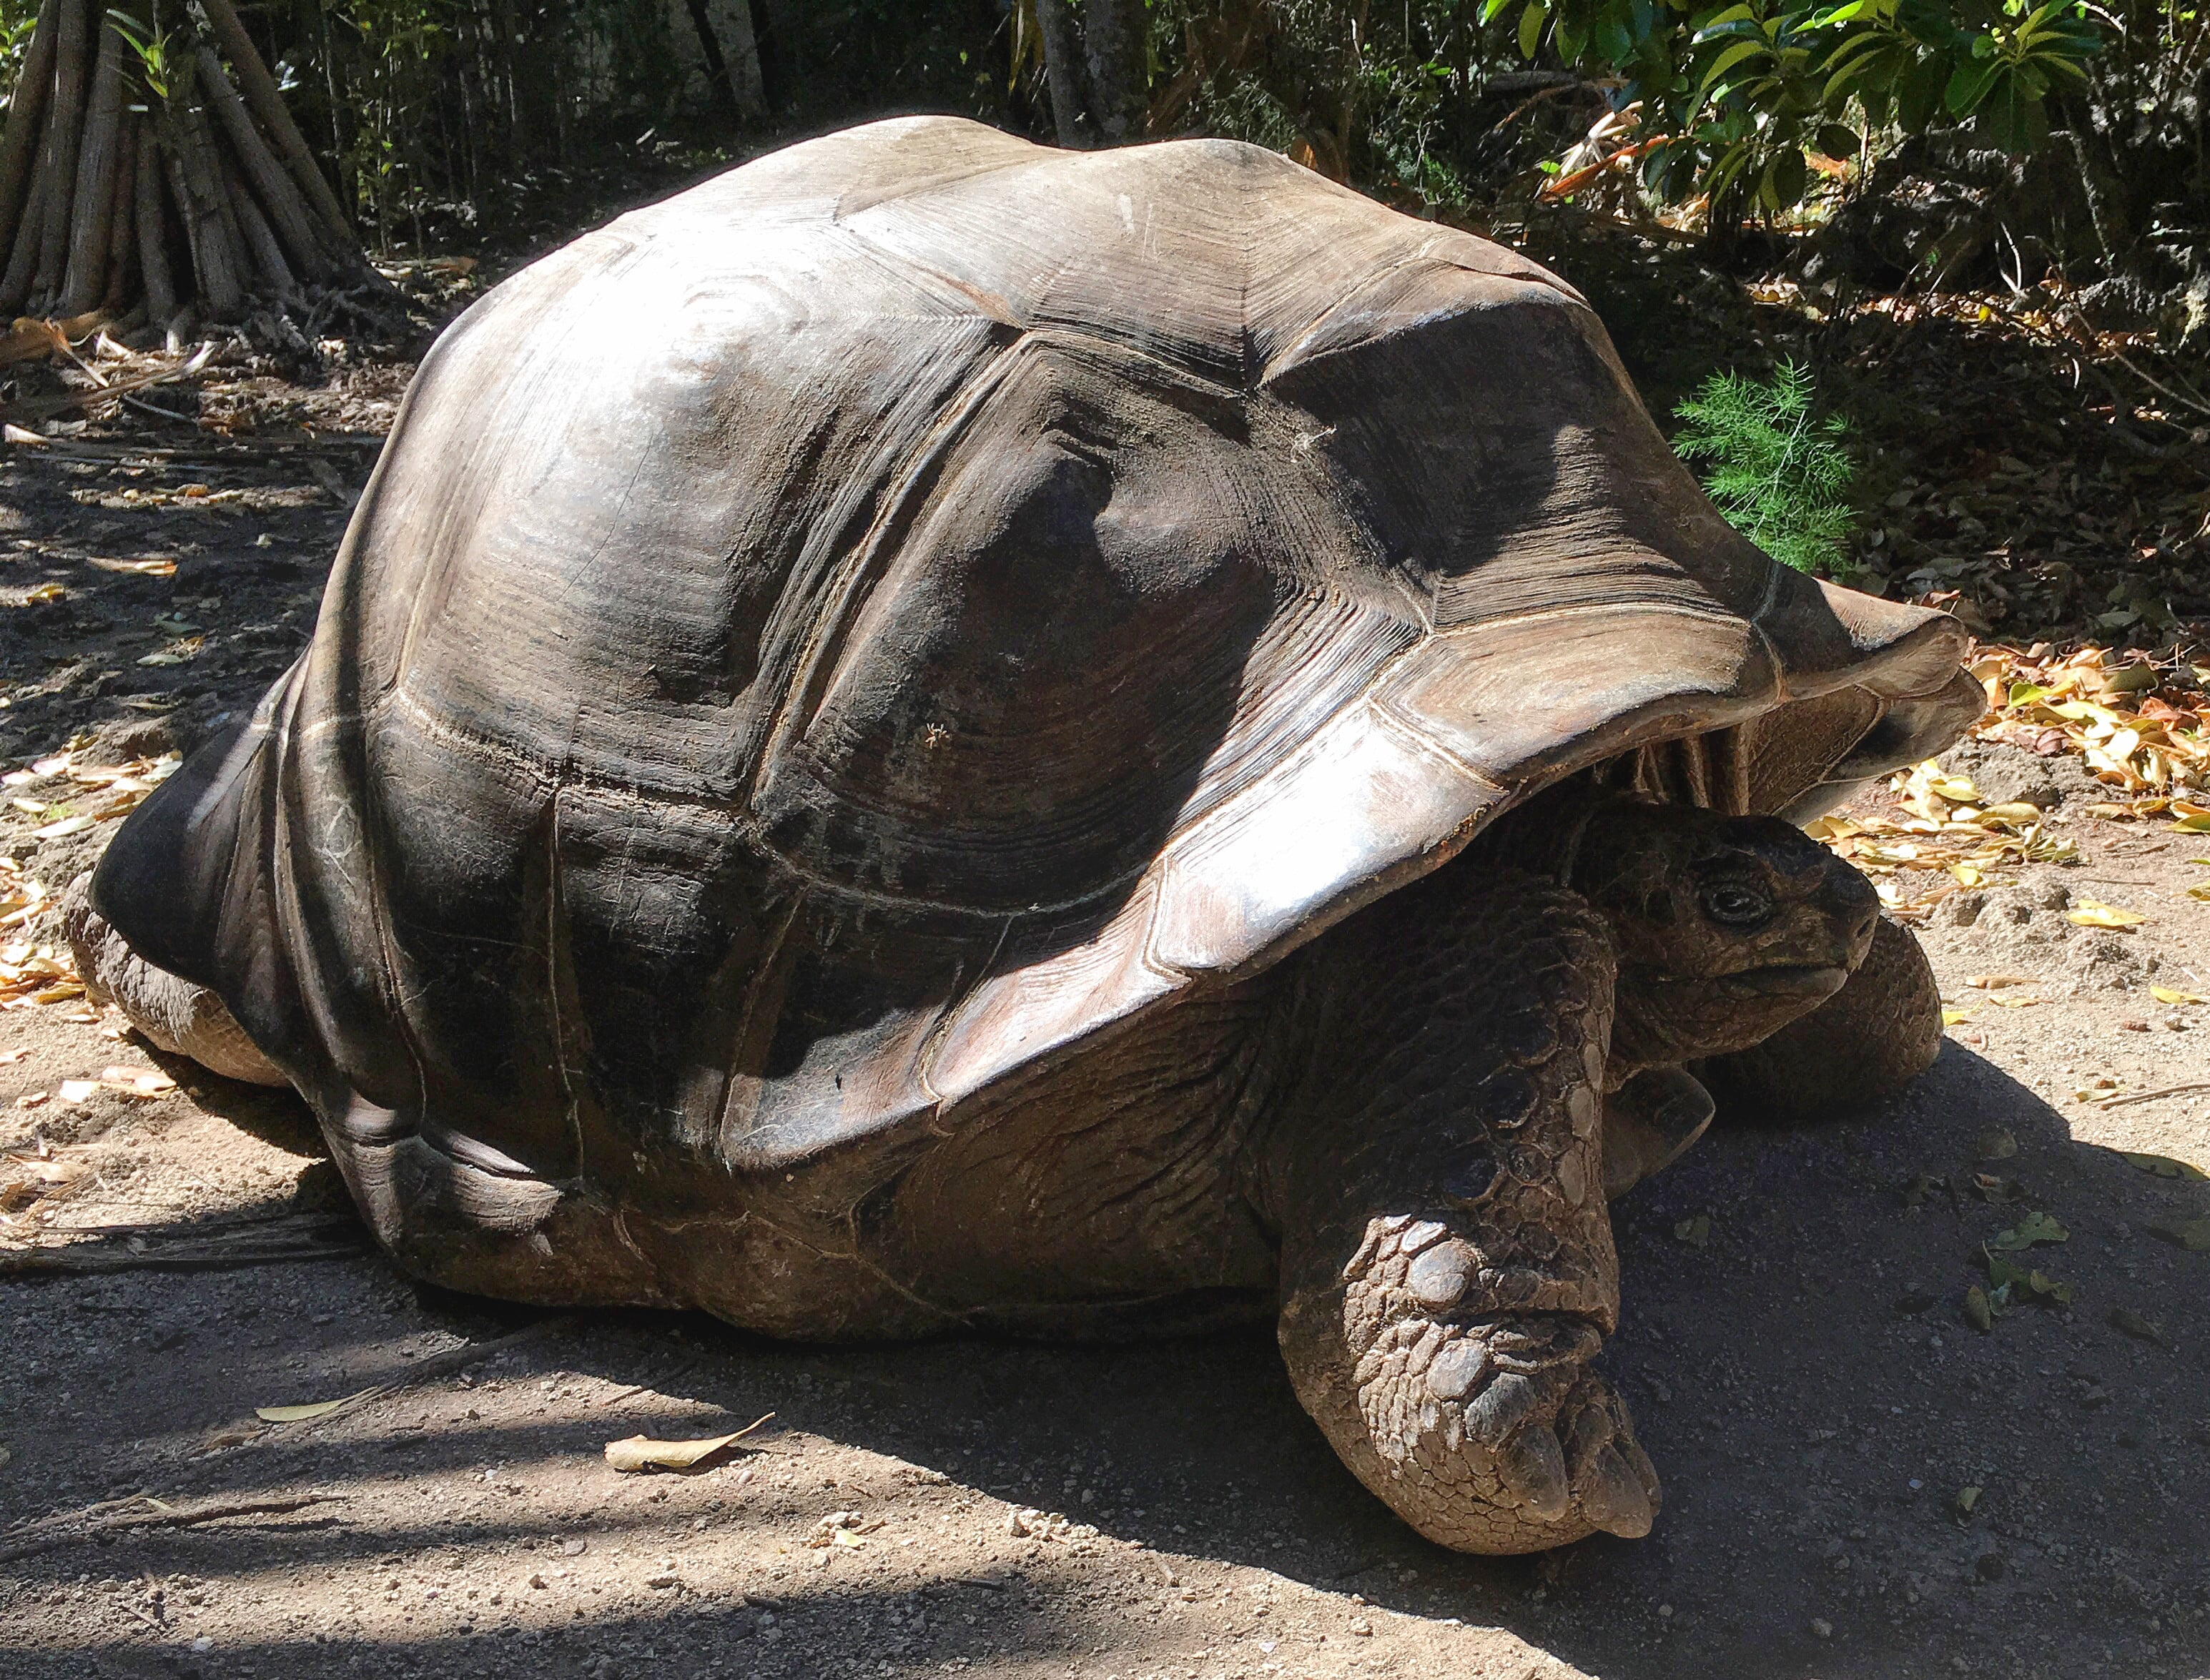 Ile aux Aigrettes Island is home to giant tortoises so wonderful to see them up close revised